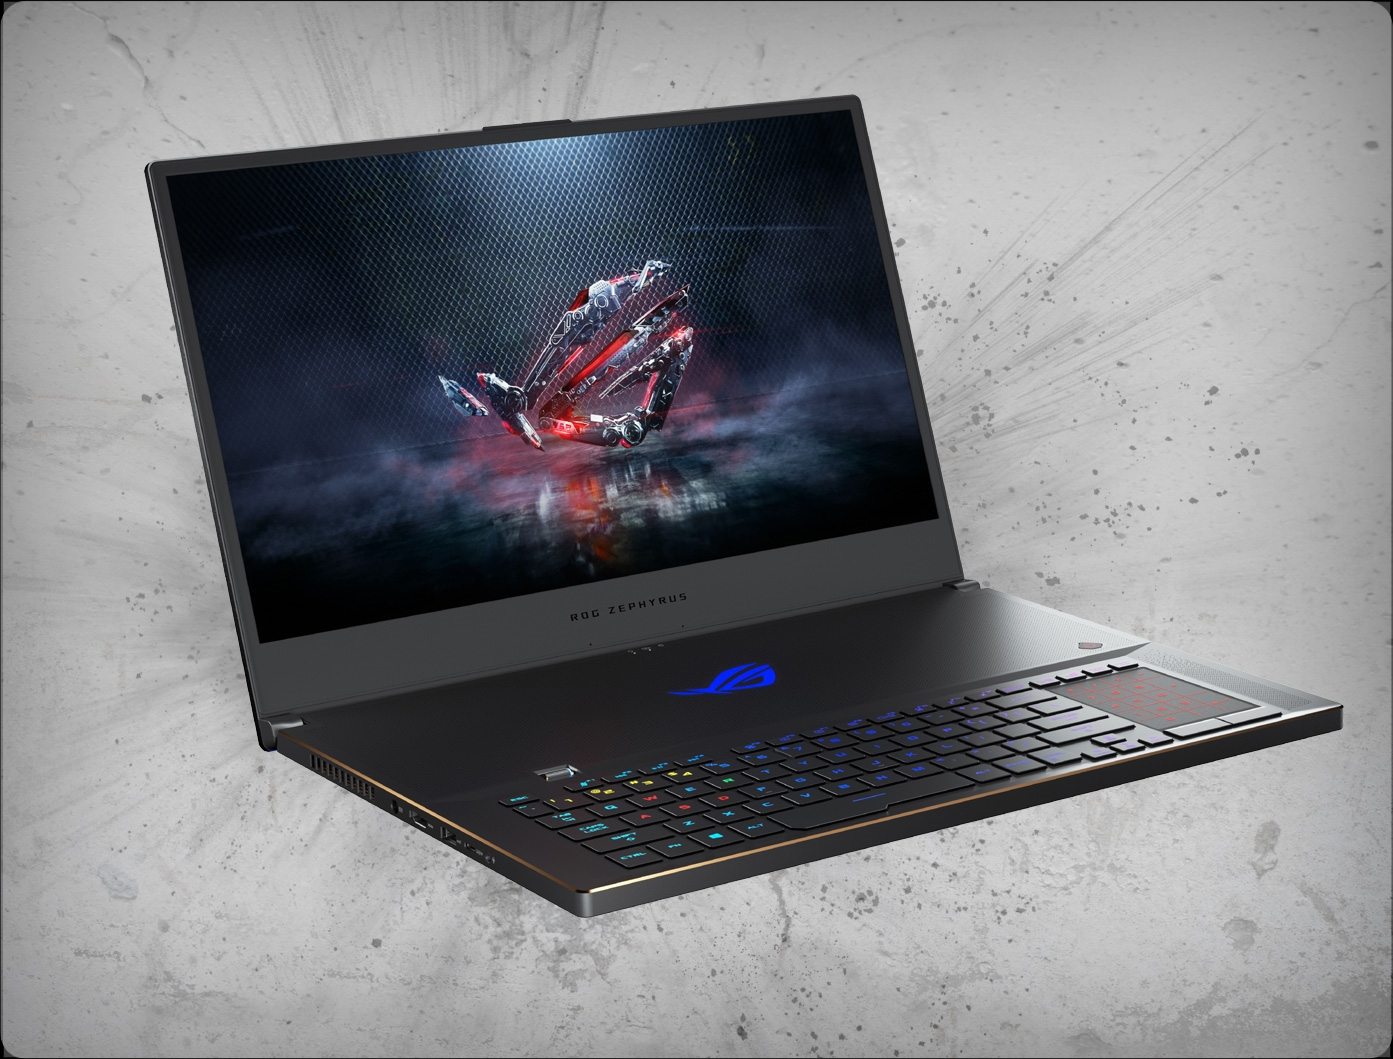 Asus ROG Zephyrus S GX701GW-DB76 144Hz nVidia RTX 2070 8GB, 9th Gen Intel  Core i7-9750H